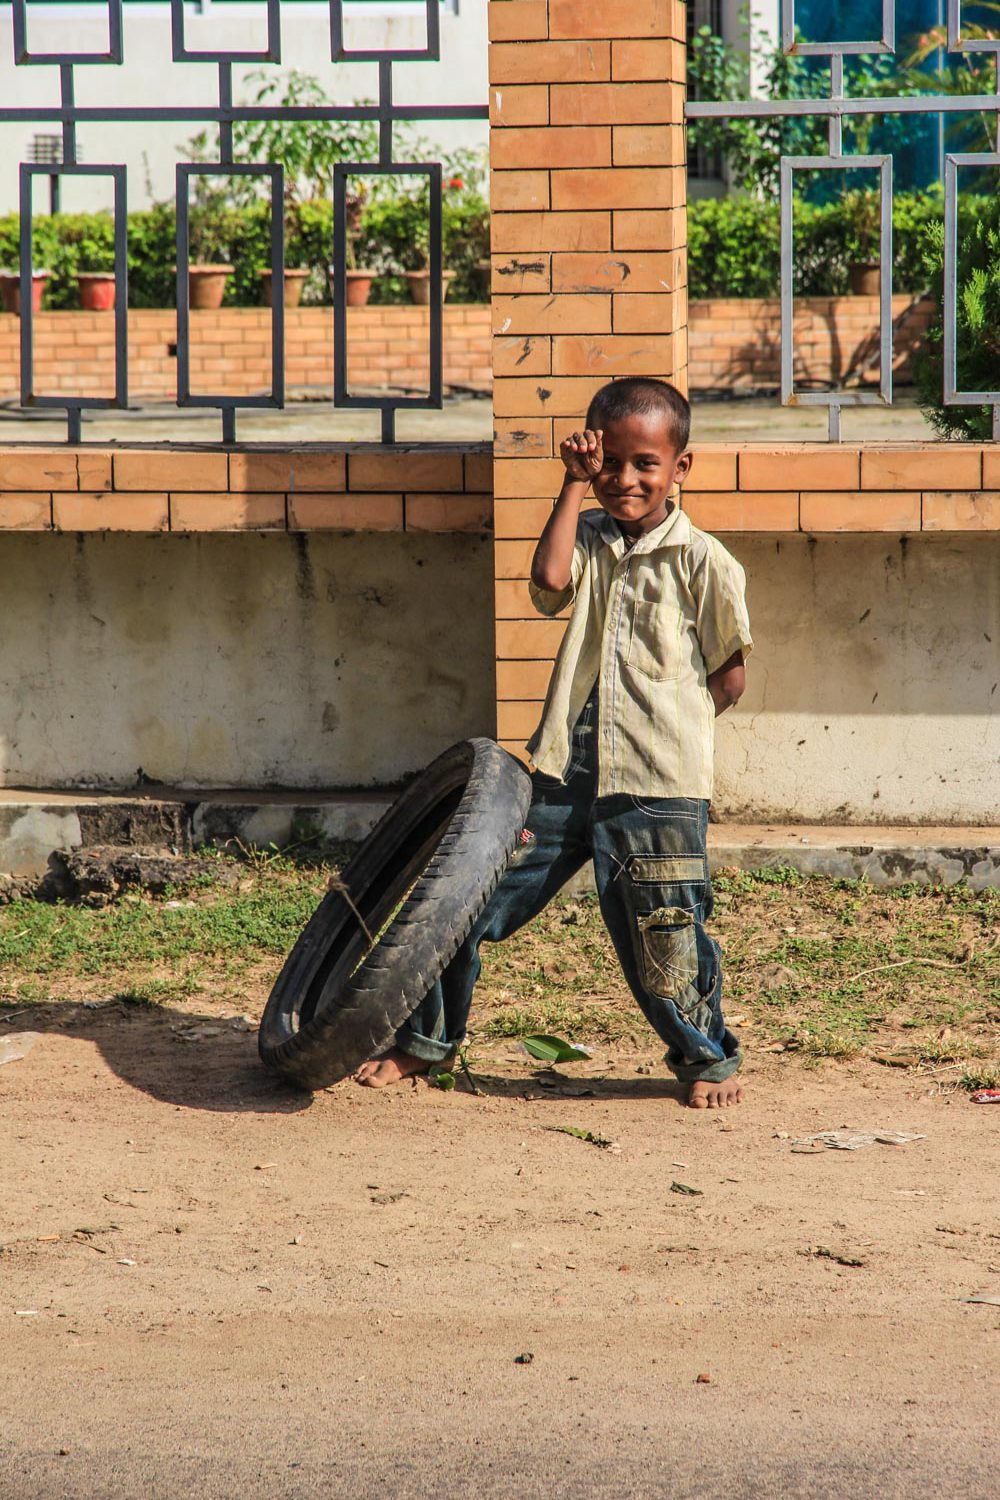 A local kid posing for photo, he wanted to give me the wheel as a gift